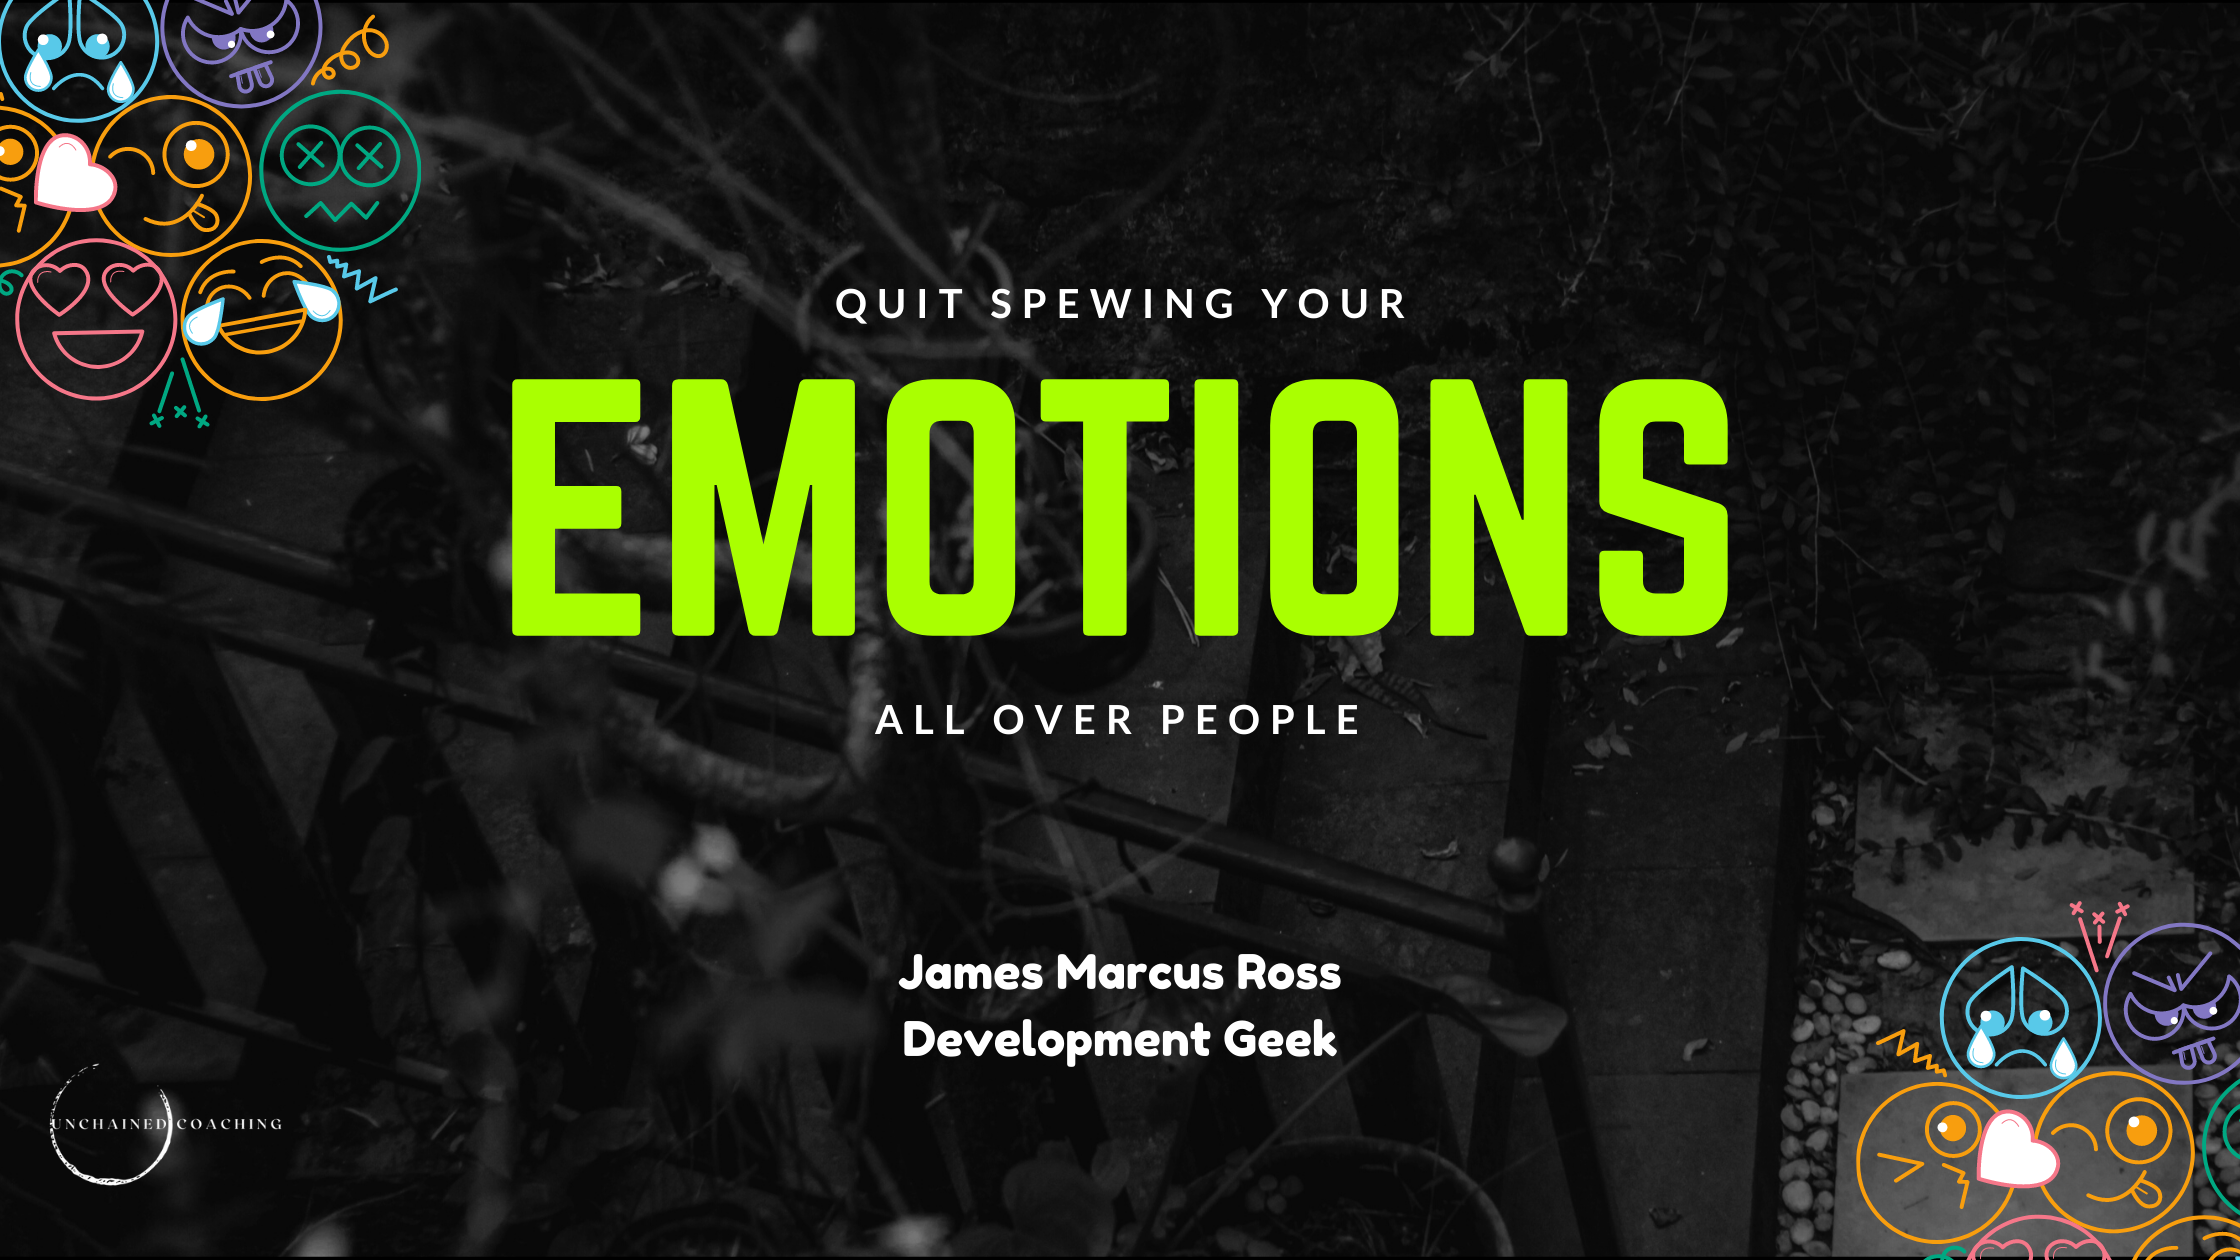 Quit Spewing Your Emotions All Over People